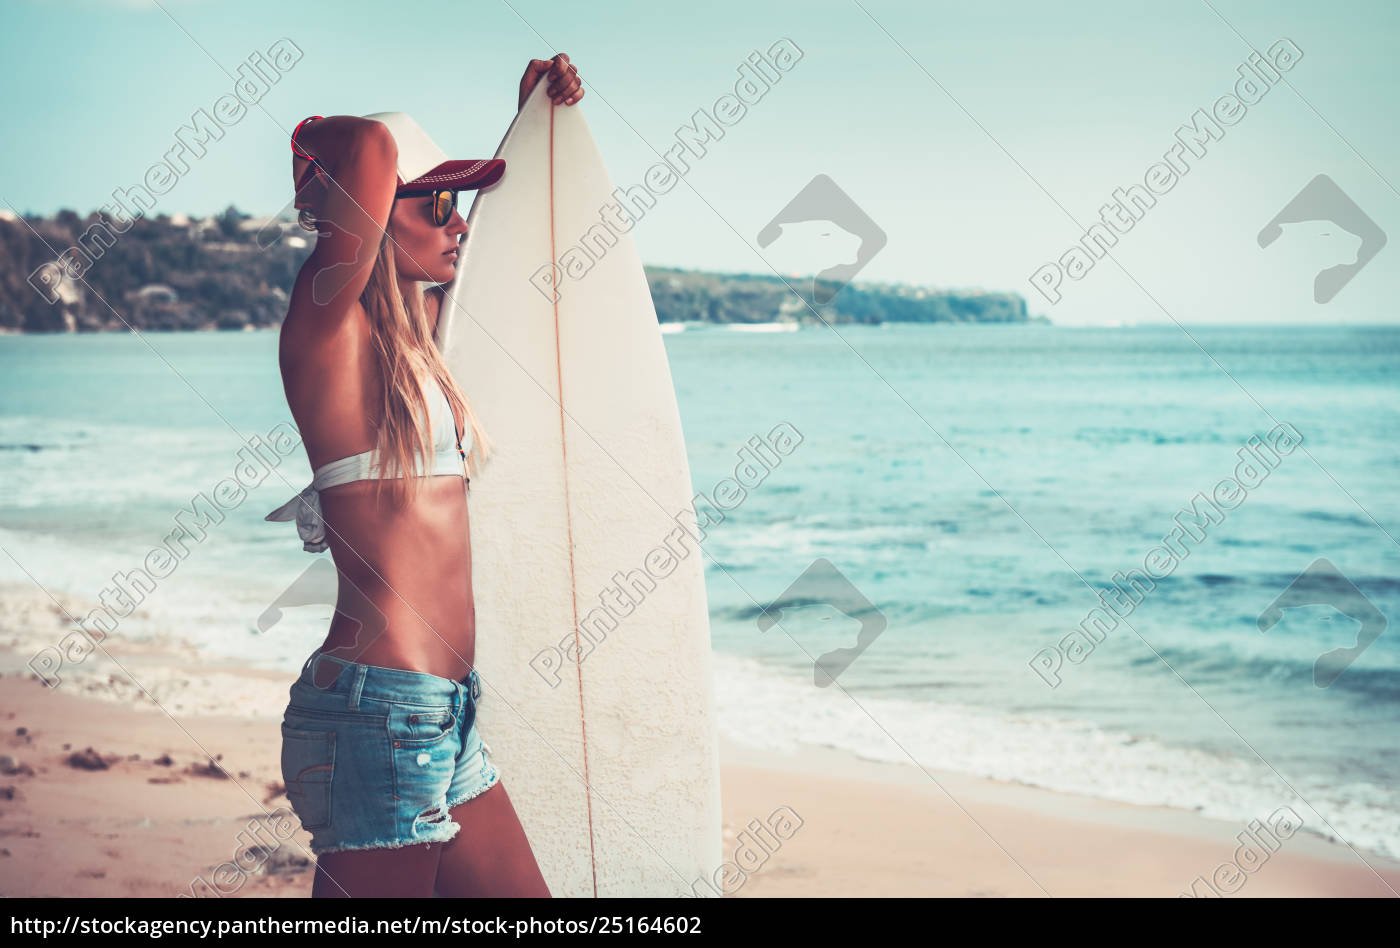 sportive, woman, with, surfboard - 25164602